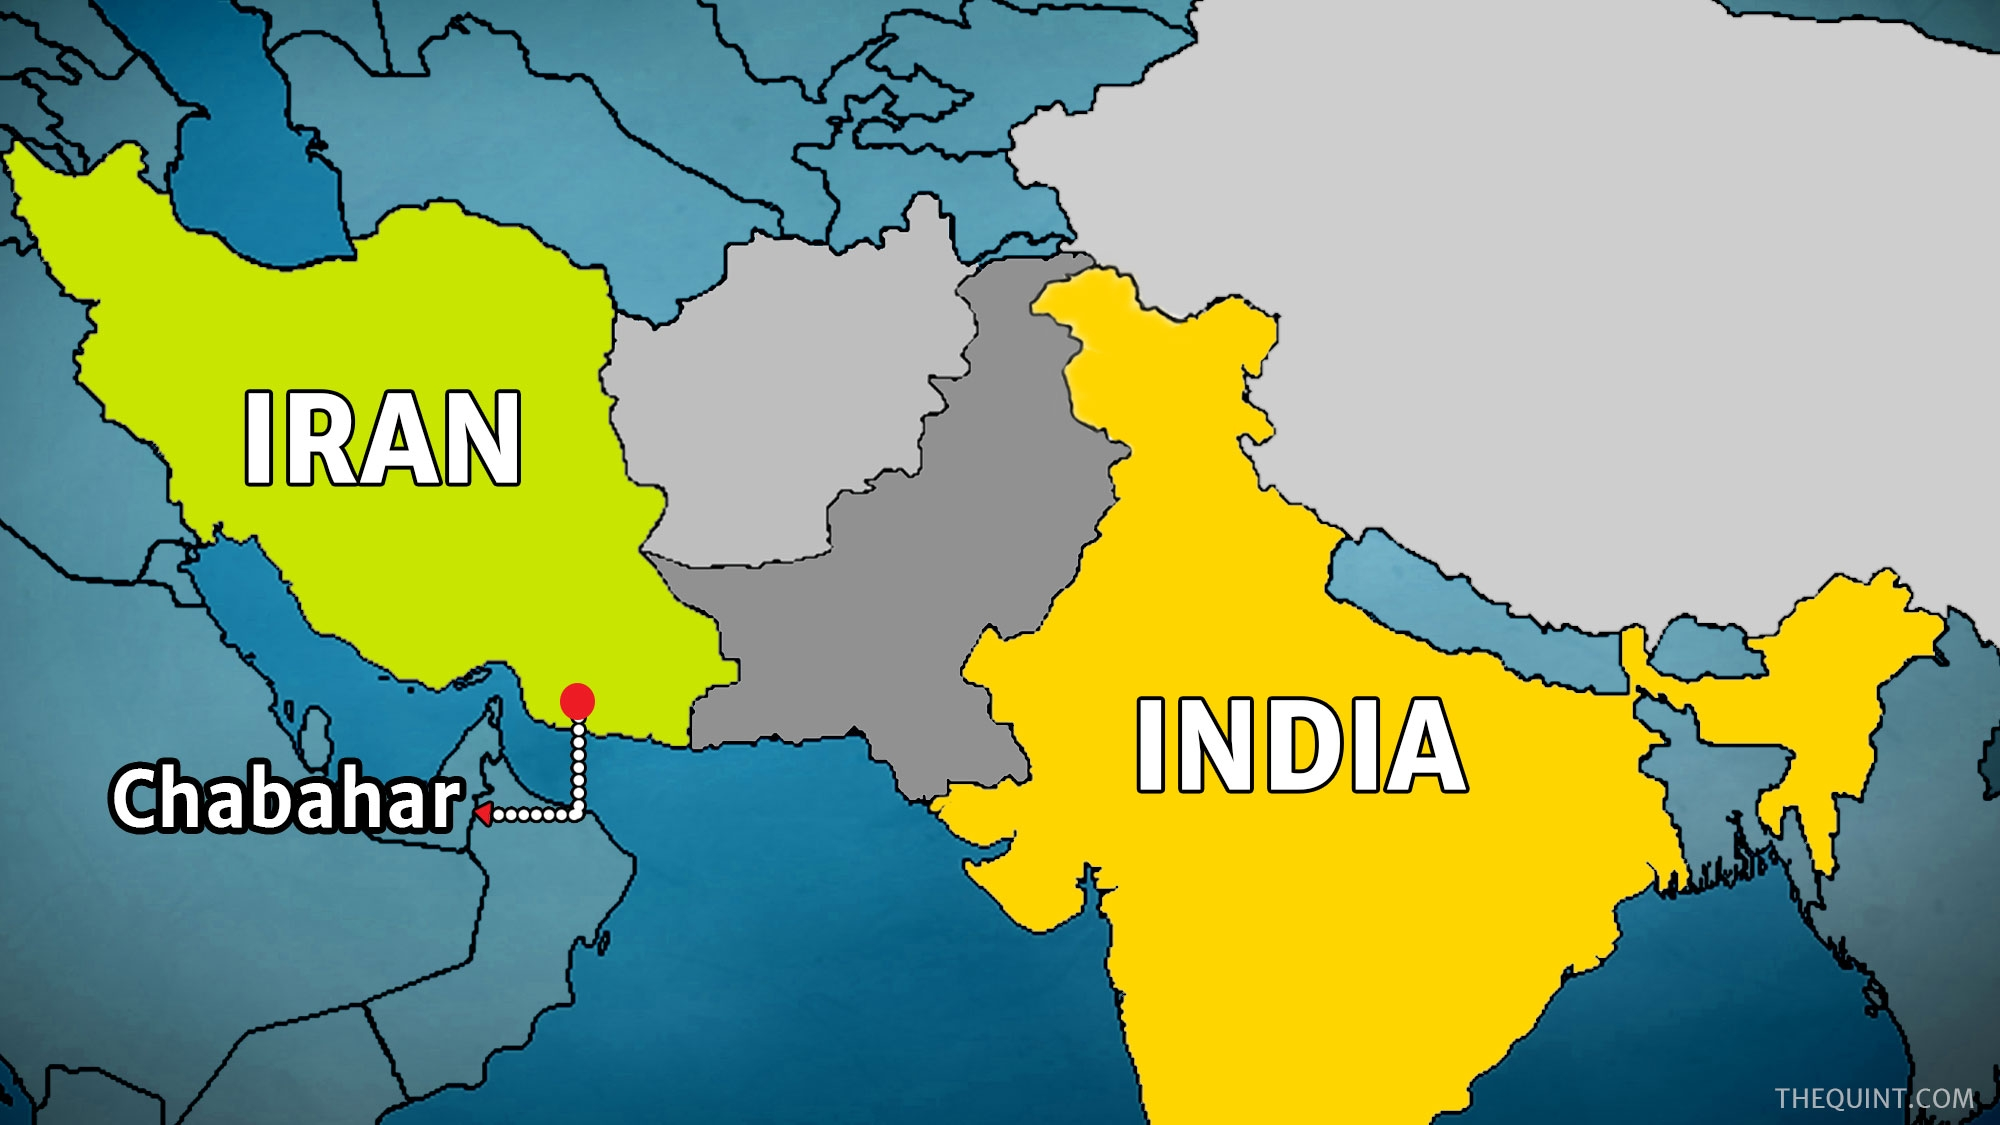 Map Of Iran And India India, Iran Discuss Possible Impact of US Sanctions on Oil Trade